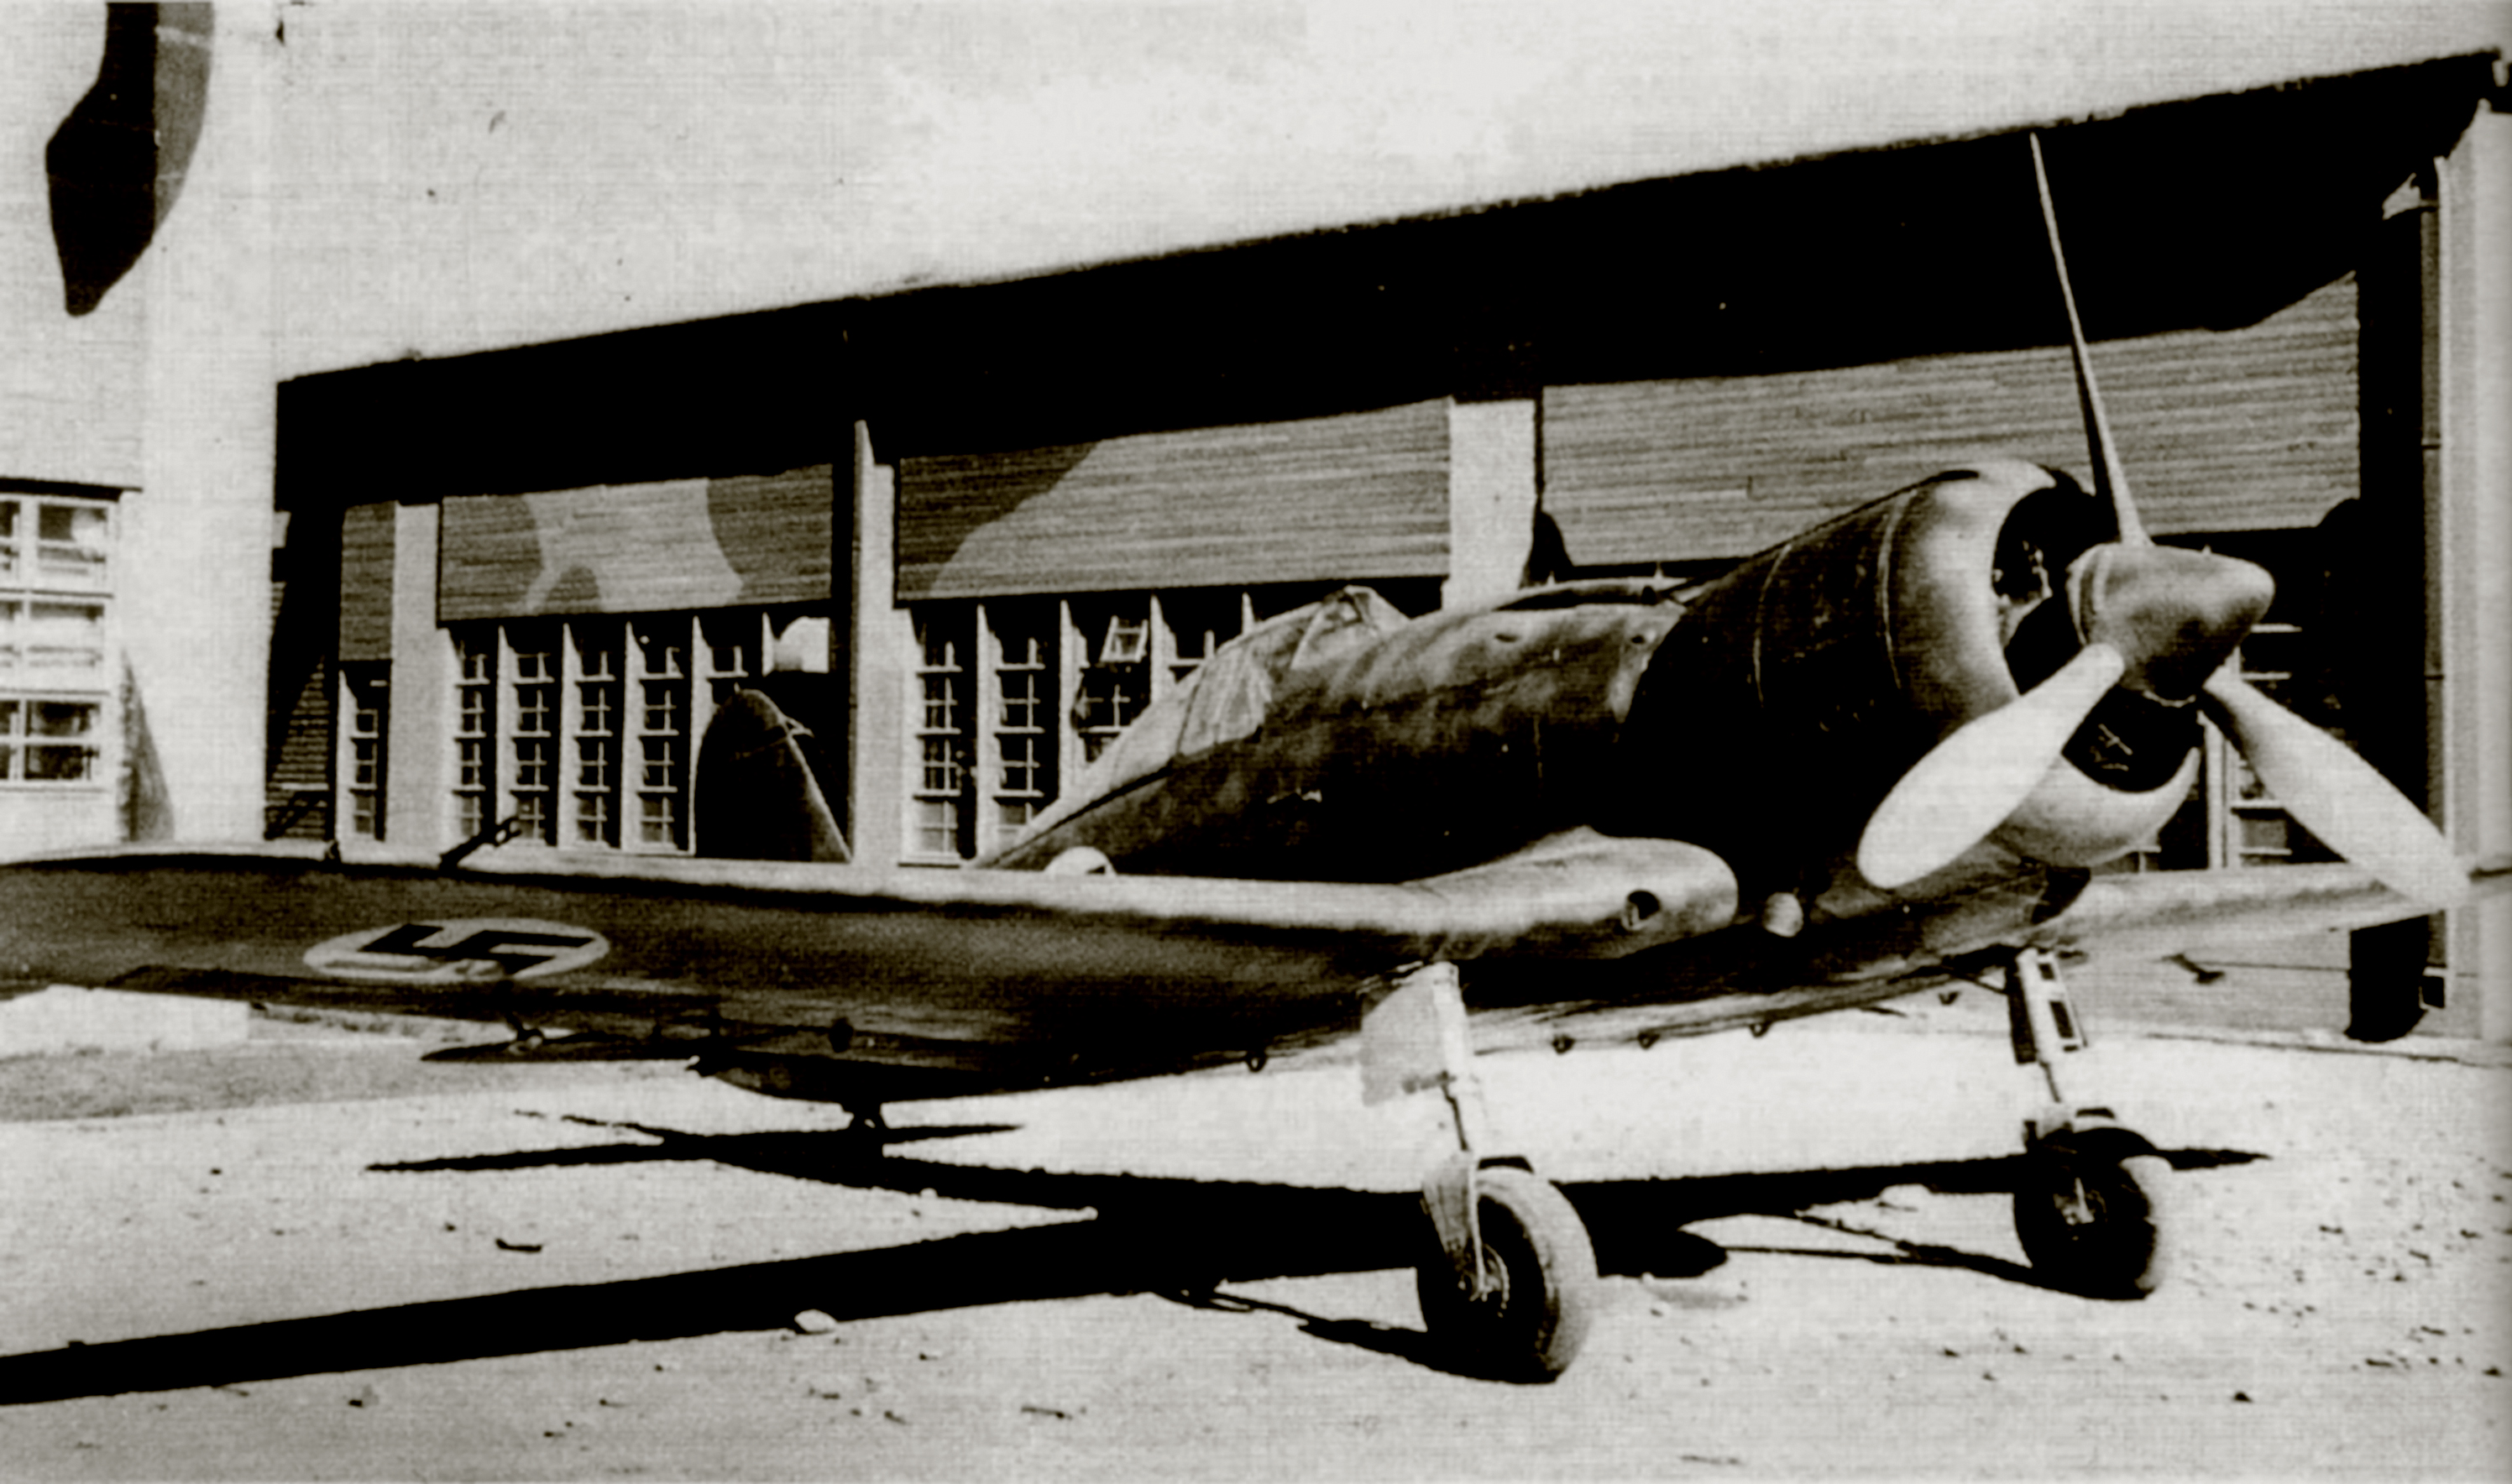 Fiat G50 Freccia FAF 3.LeLv26 FA16 MM3613 State Aircraft Factory Tampere Jun 1940 01